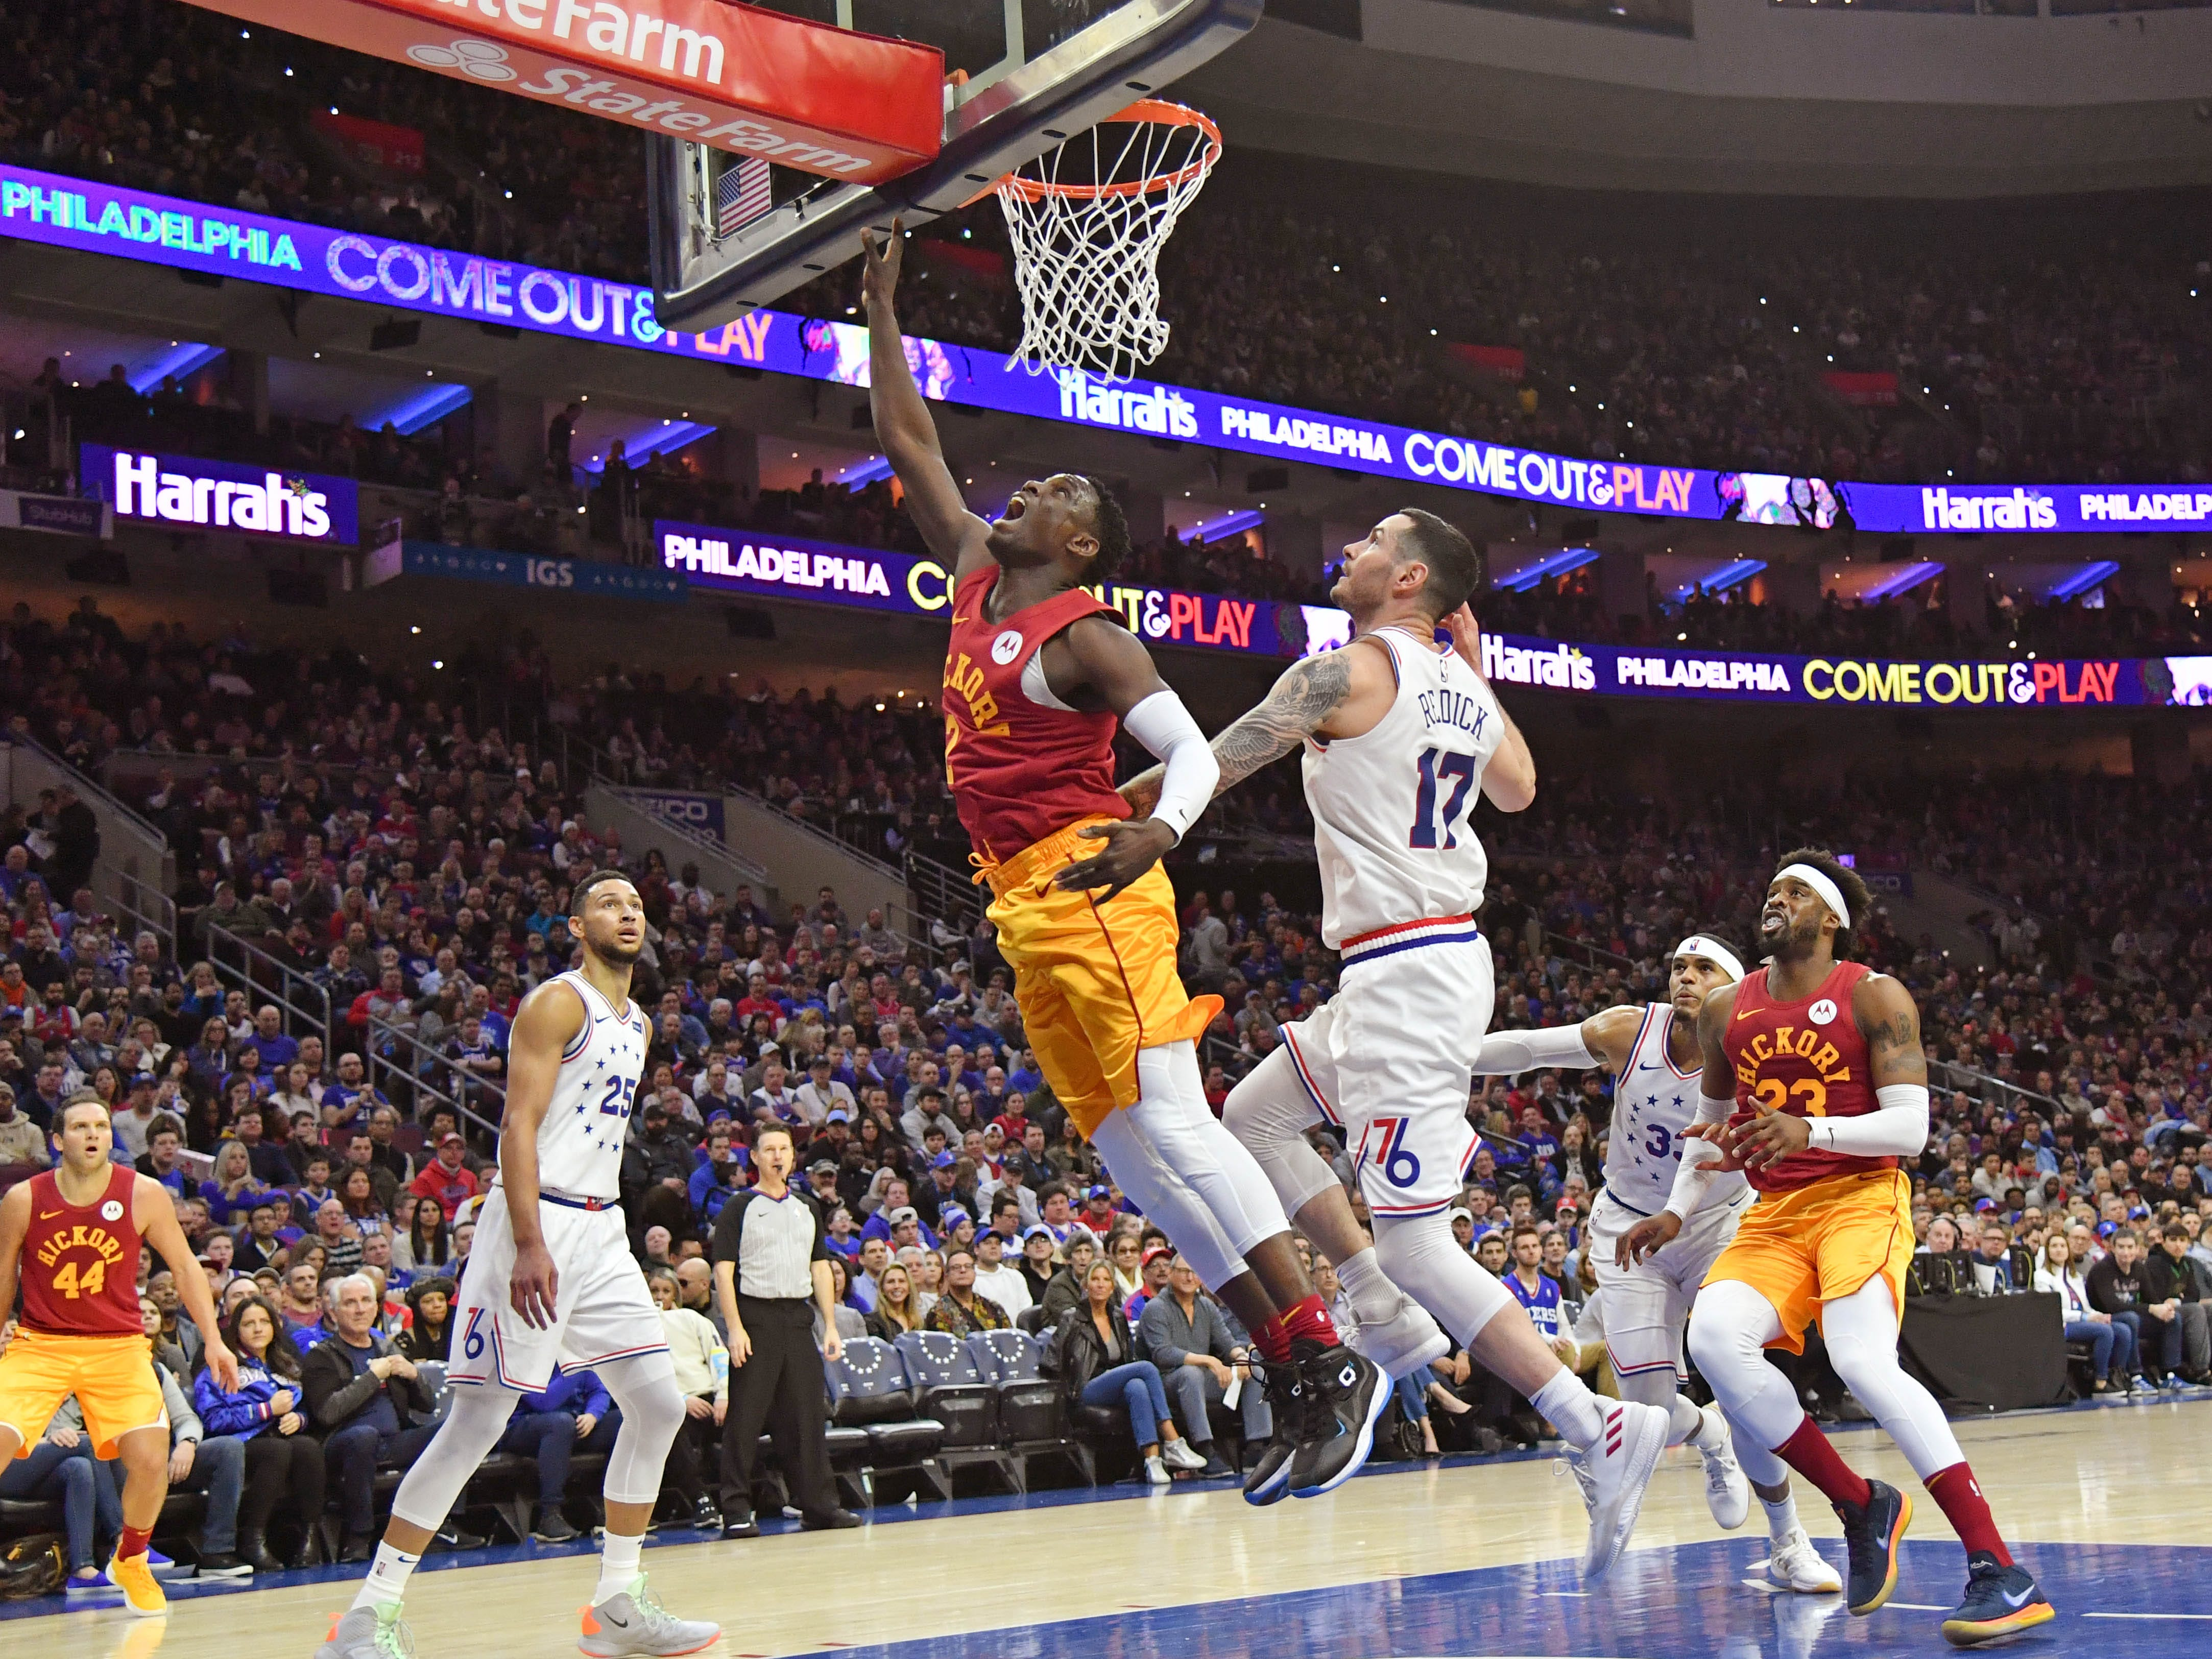 Mar 10, 2019; Philadelphia, PA, USA; Indiana Pacers guard Darren Collison (2) makes a lay up past Philadelphia 76ers guard JJ Redick (17) during the first quarter at Wells Fargo Center.